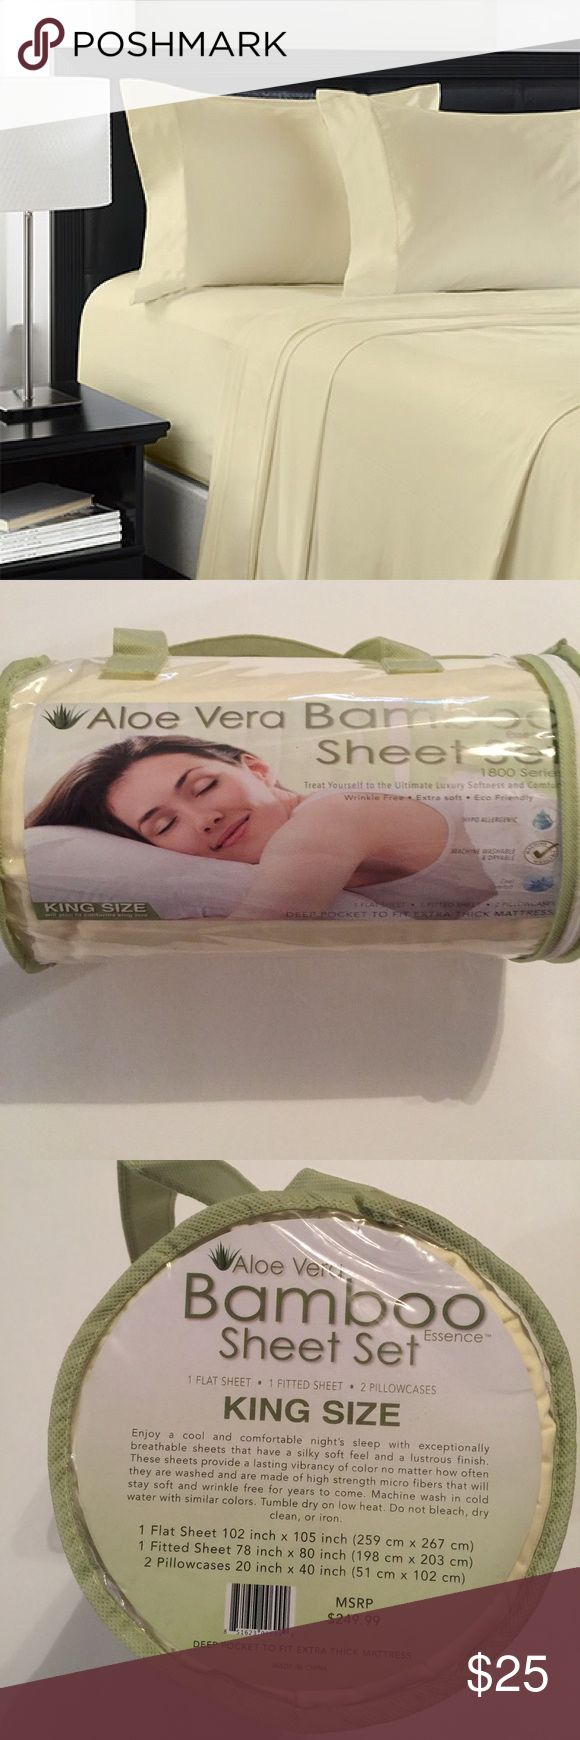 Aloe Vera bamboo sheet set king size Brand new 1800 Other